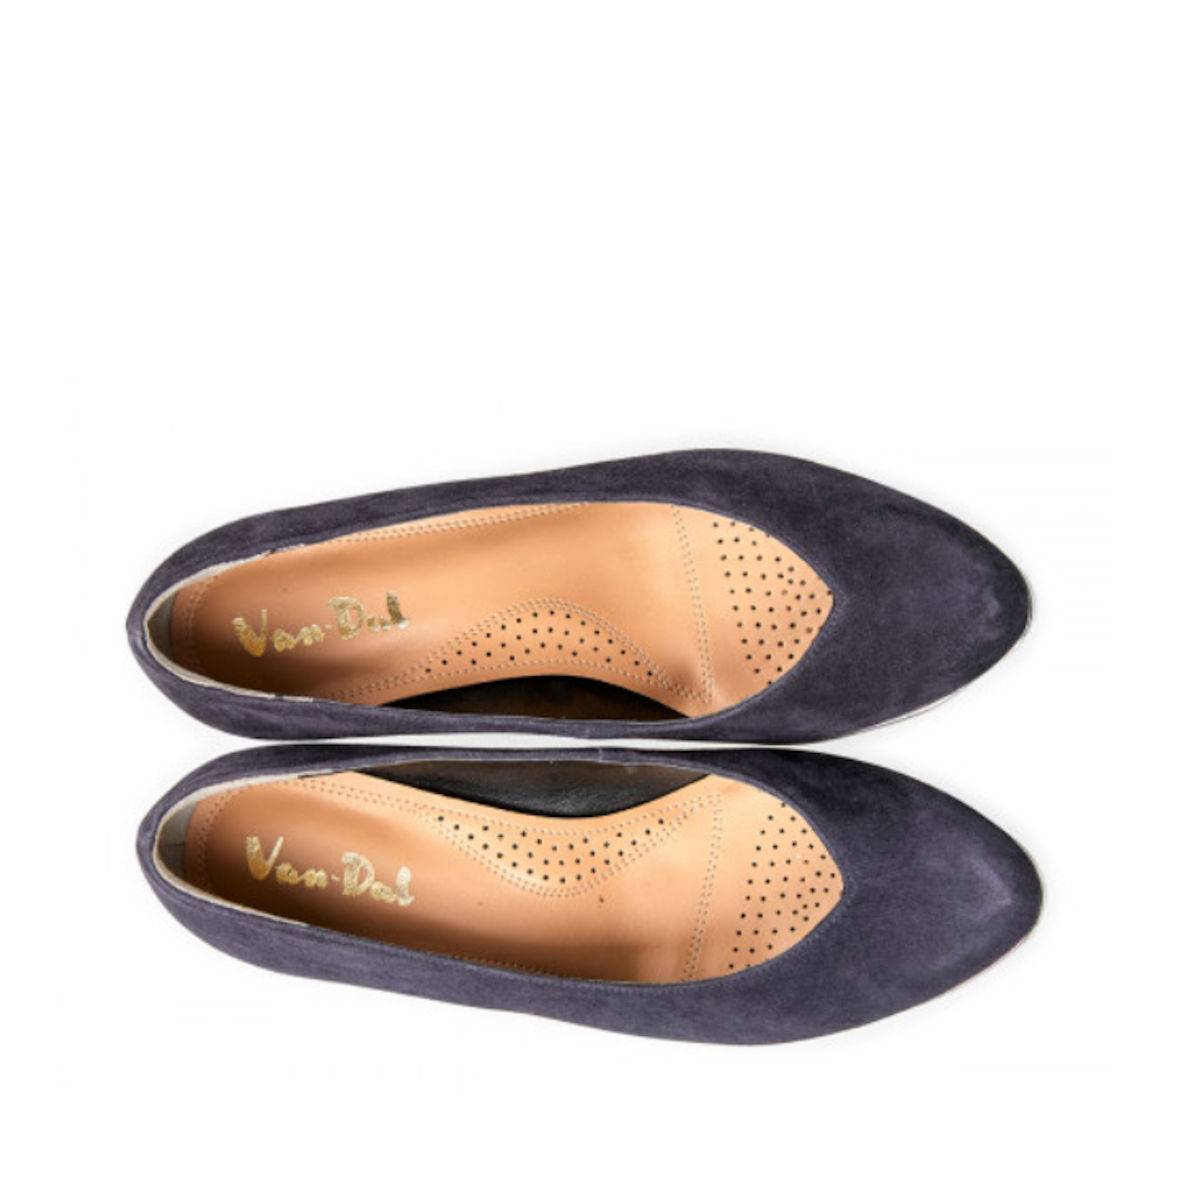 Van Dal Ariah Midnight Summer Suede Wedge Shoes